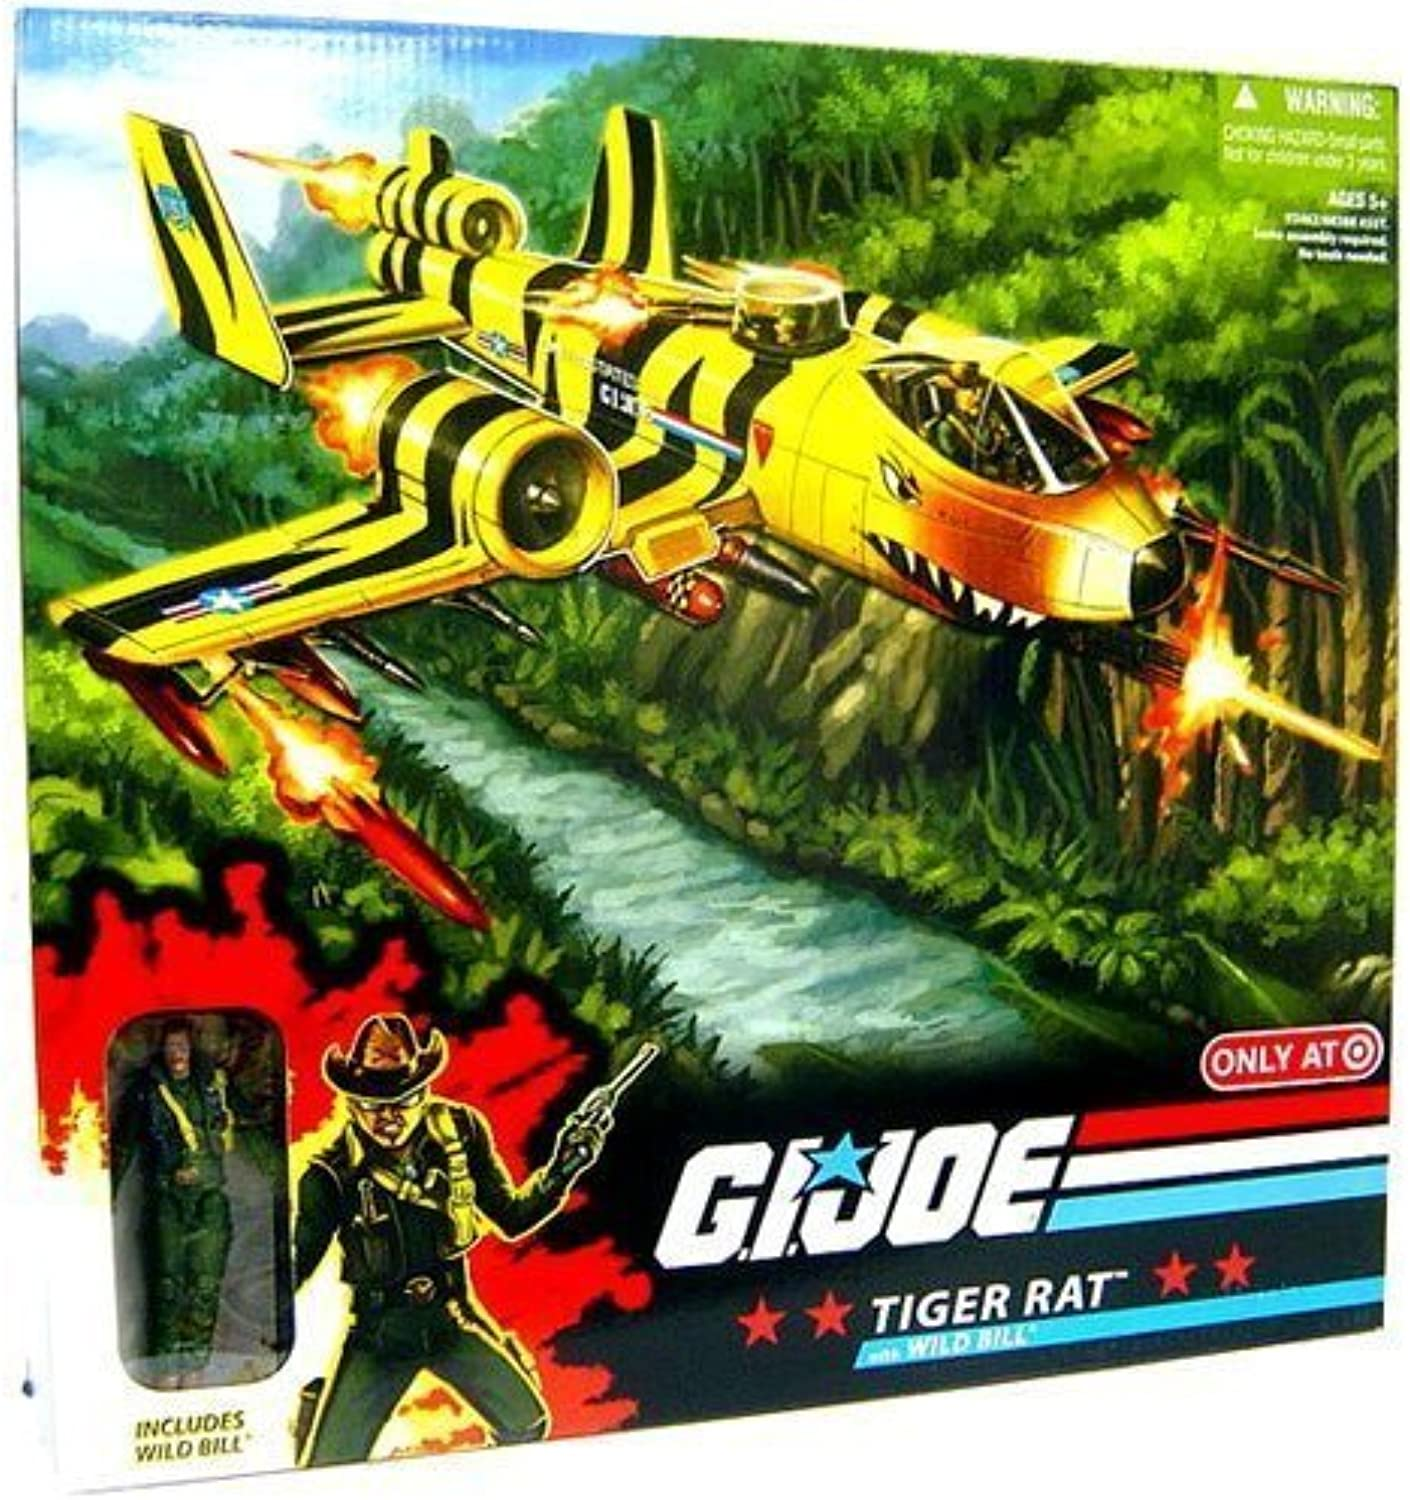 G. I. Joe Exclusive Deluxe Vehicle Tiger Ratte with Wild Bill by Hasbro (English Manual)